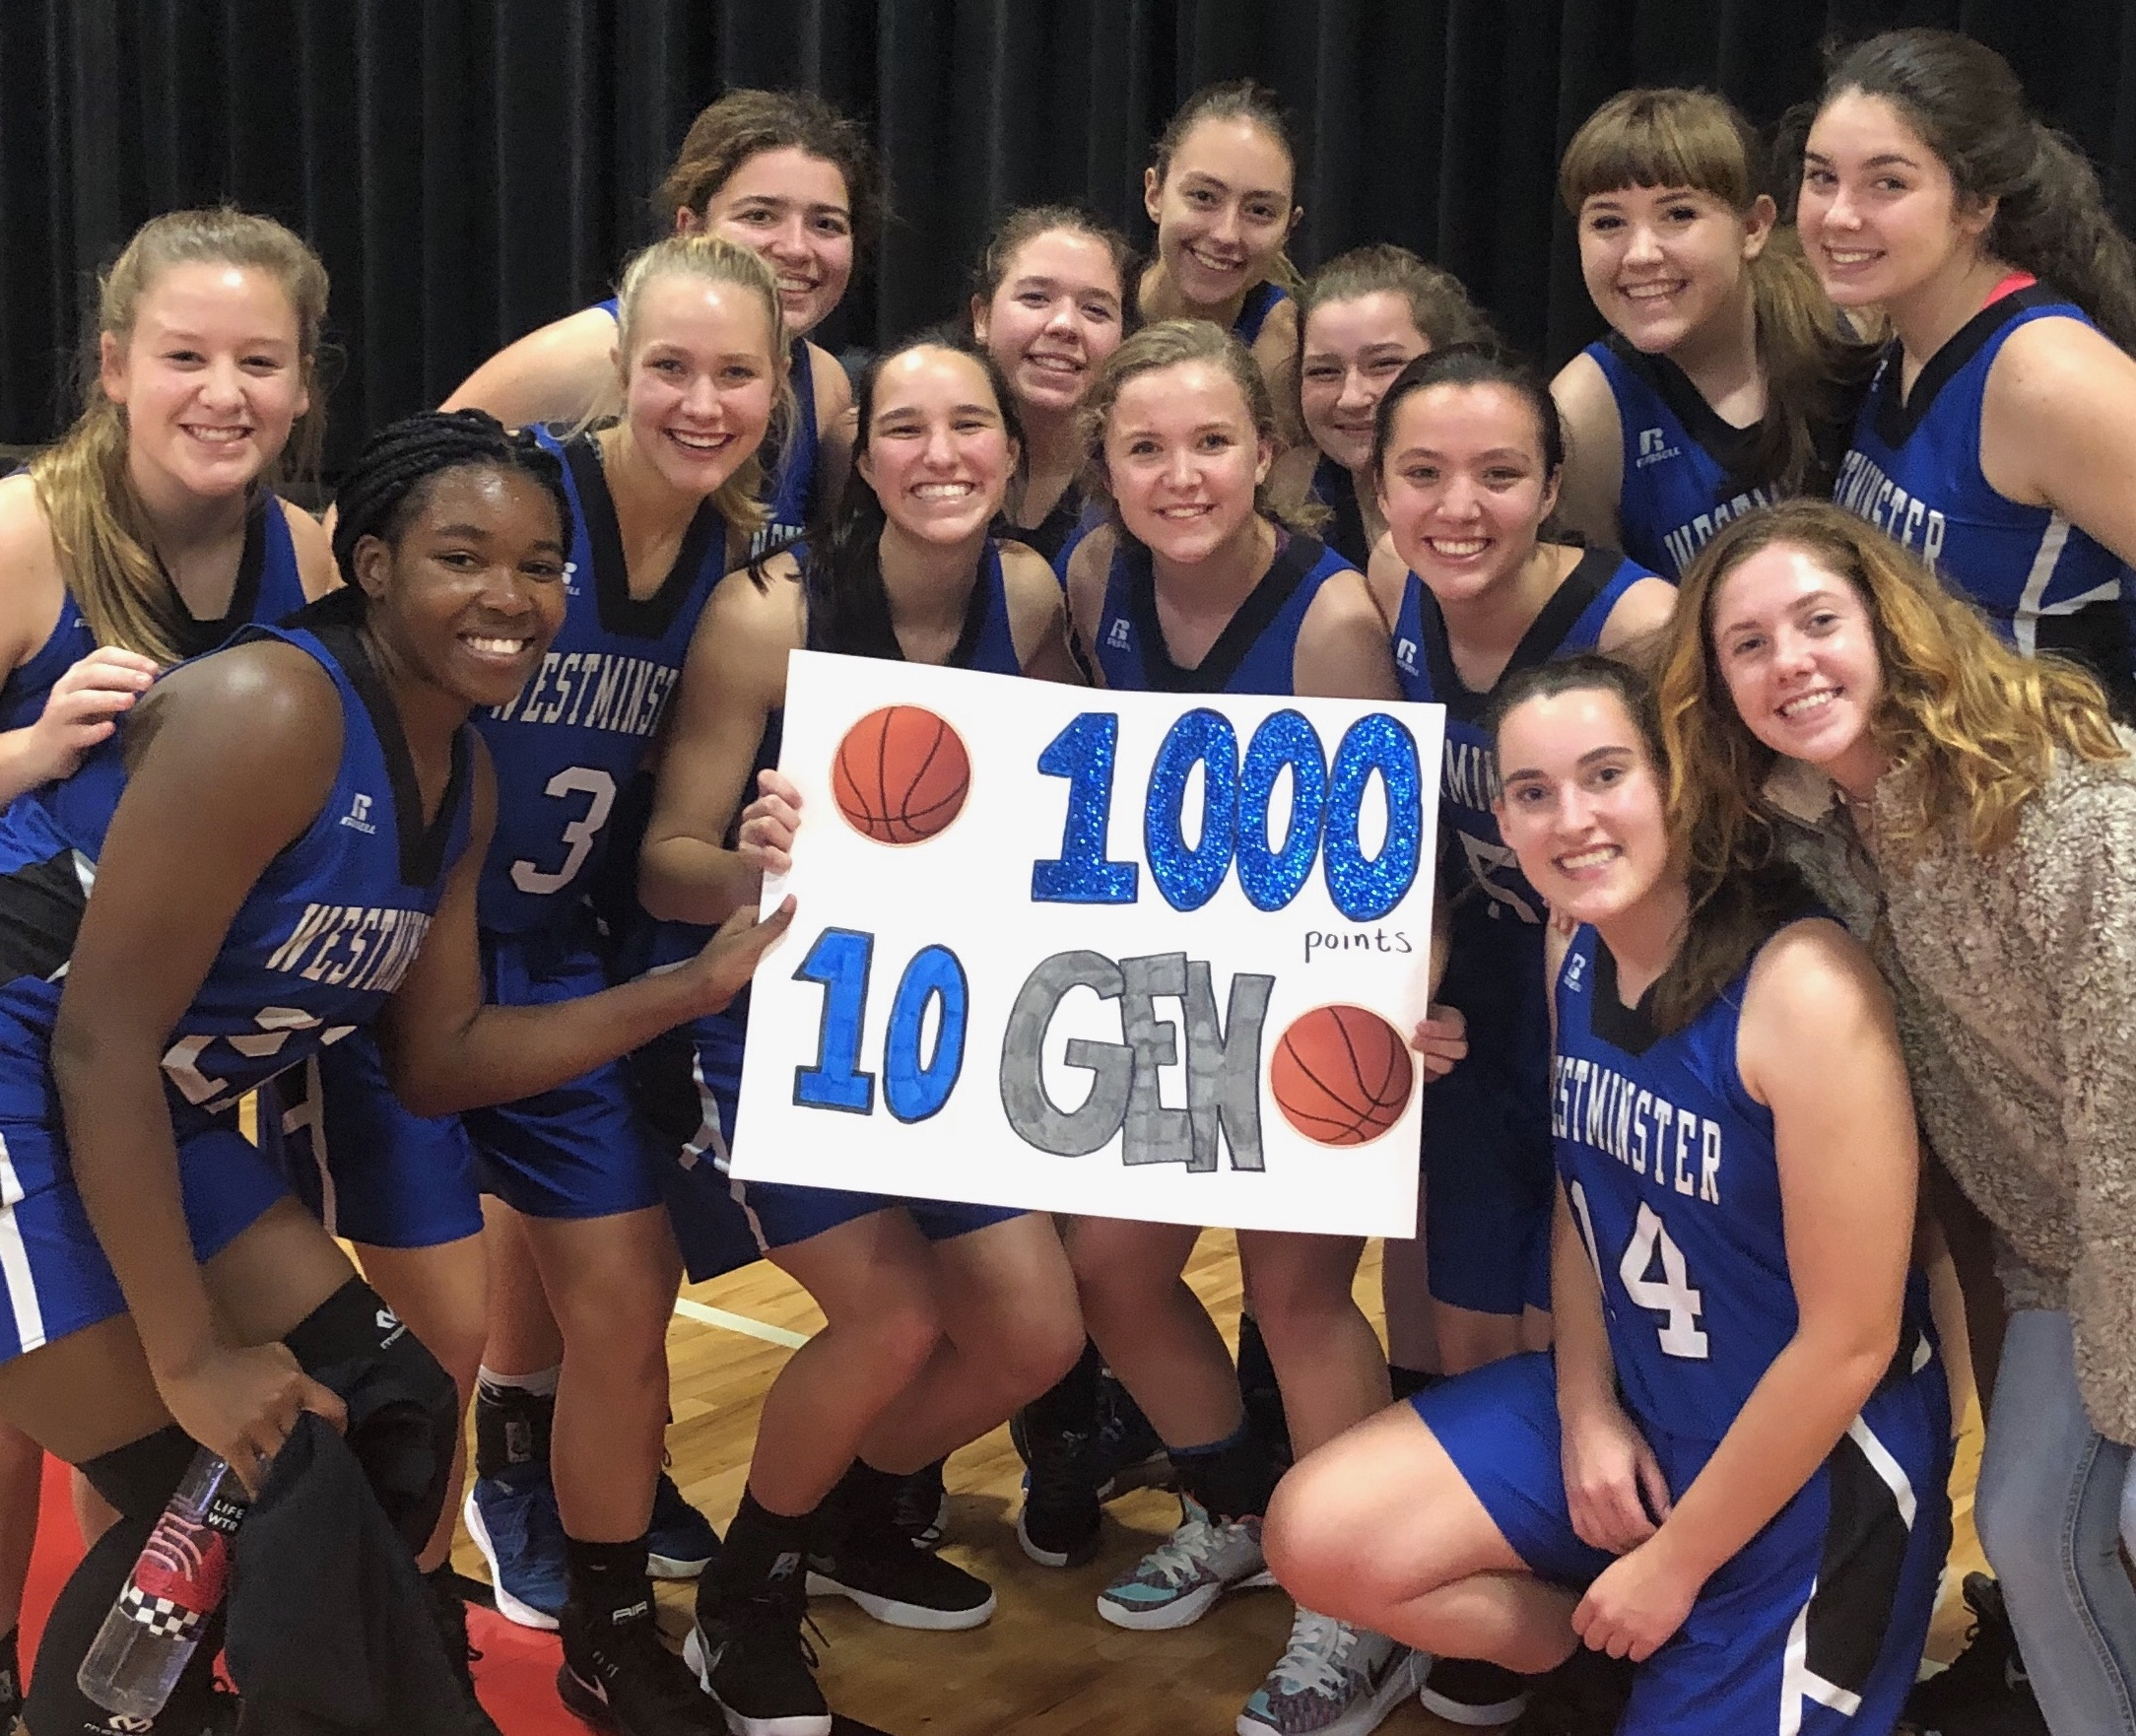 Athletics Photo: Waller 1000 pt | Westminster